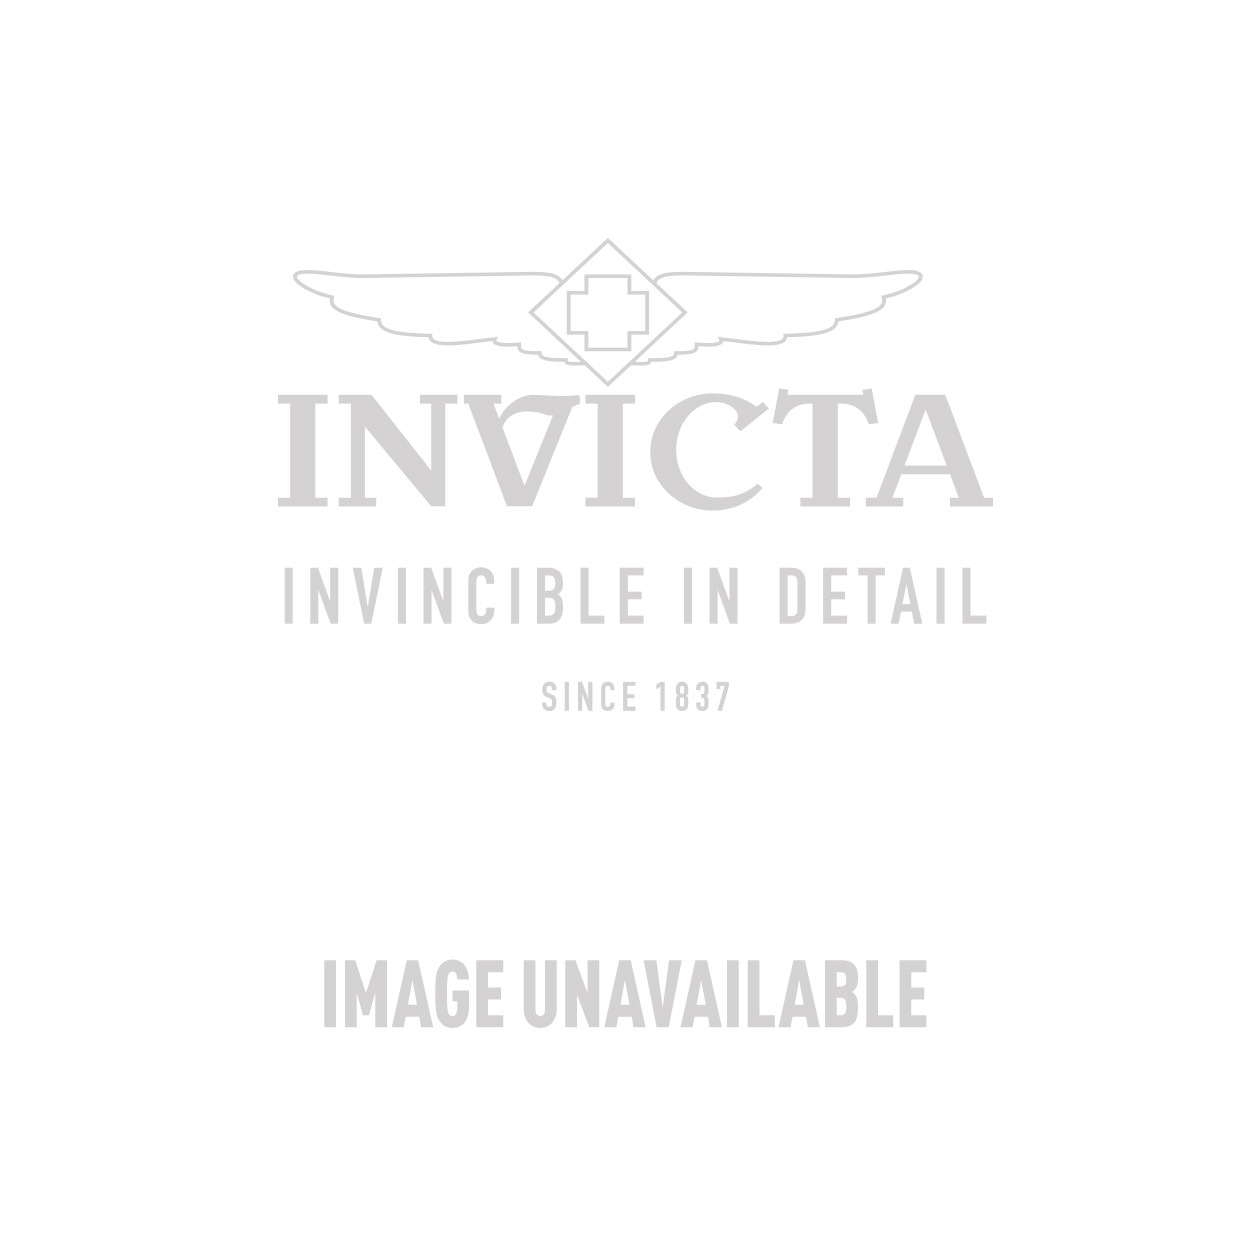 Invicta Specialty Swiss Movement Quartz Watch - Stainless Steel case Stainless Steel band - Model 0379